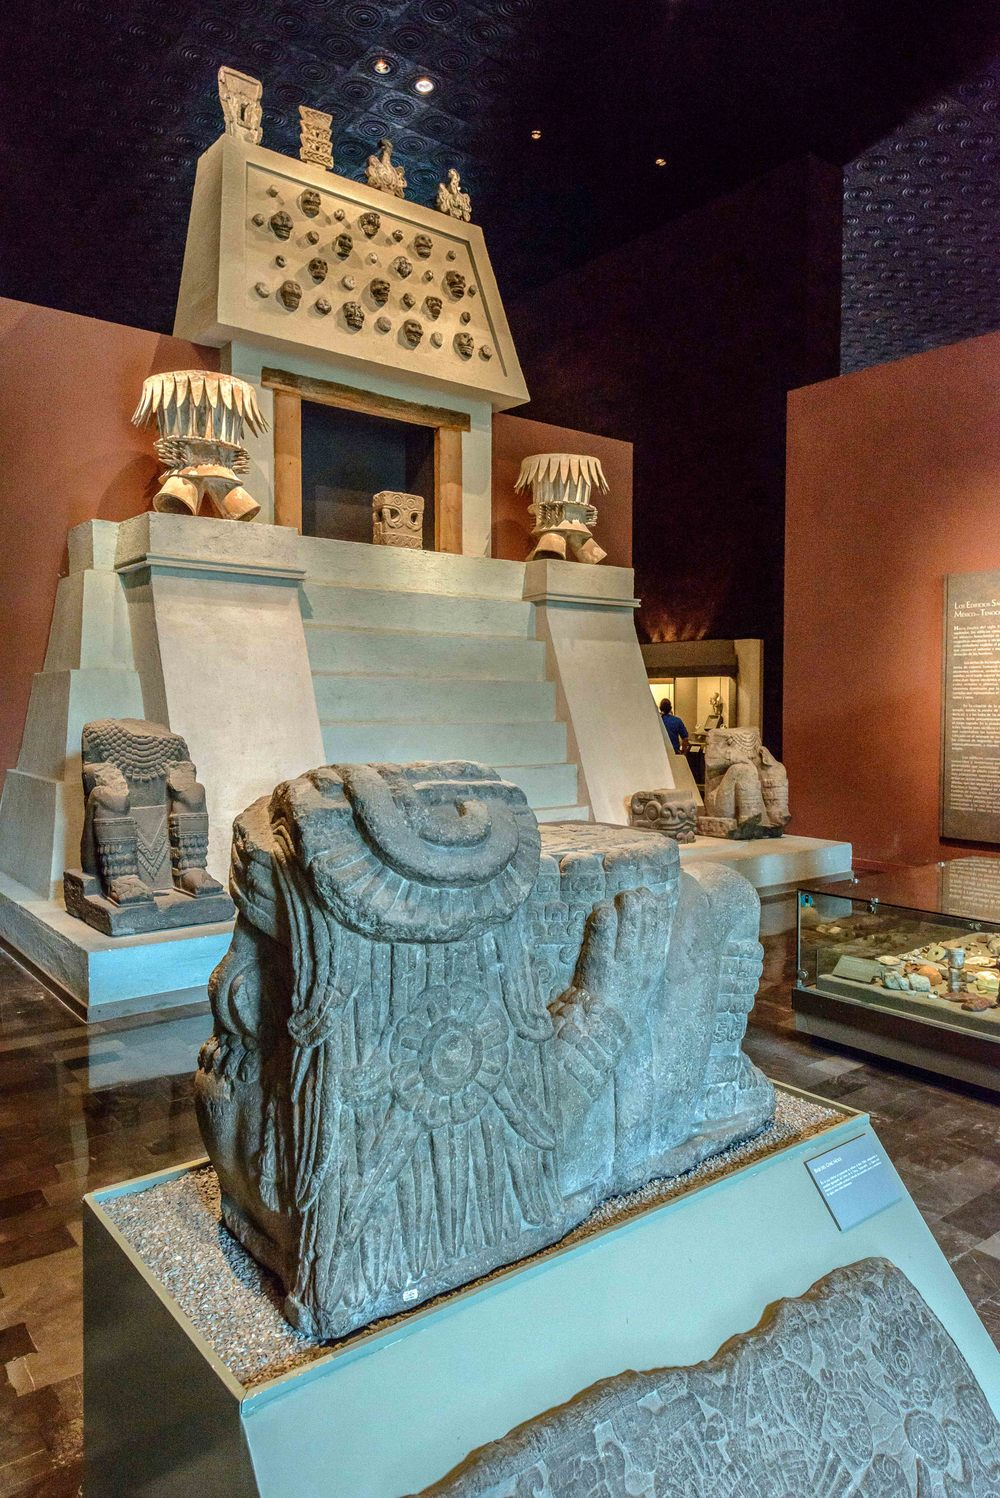 Chac Mool  in front. On the underside was embossed represent the god Tlaloc adopting the crouched position of the God of Earth, Tlaltecuhtli . The figure is immersed in a water world, surrounded by snails, fish and swirls of water, among others.